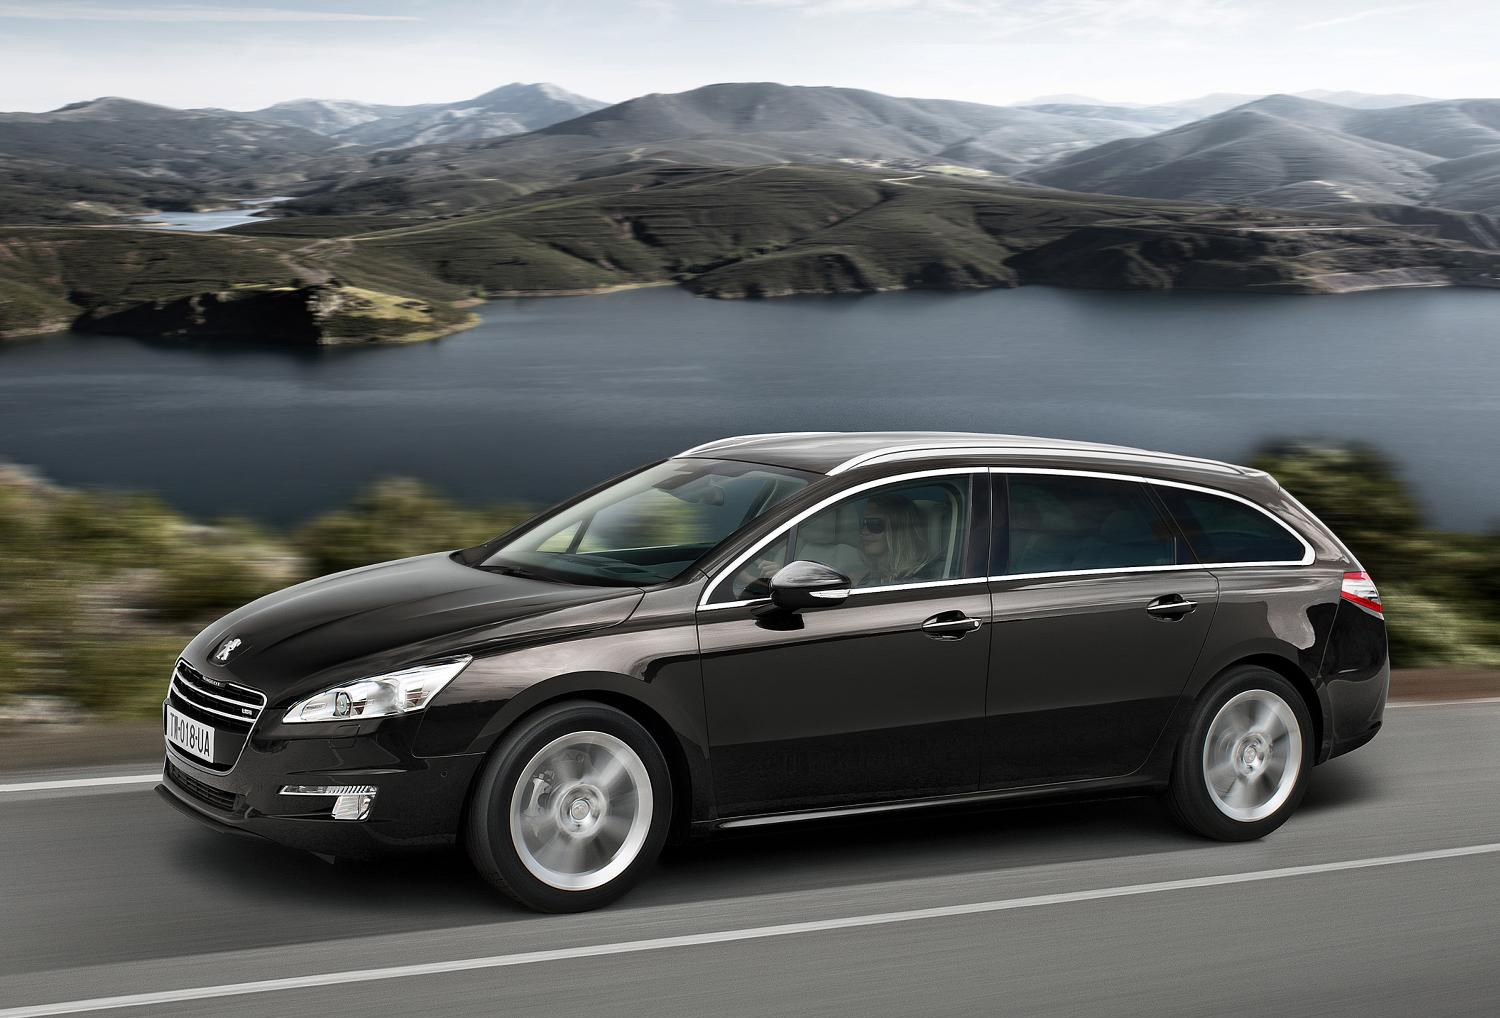 peugeot 508 sw (2011 - ) features, equipment and accessories | parkers